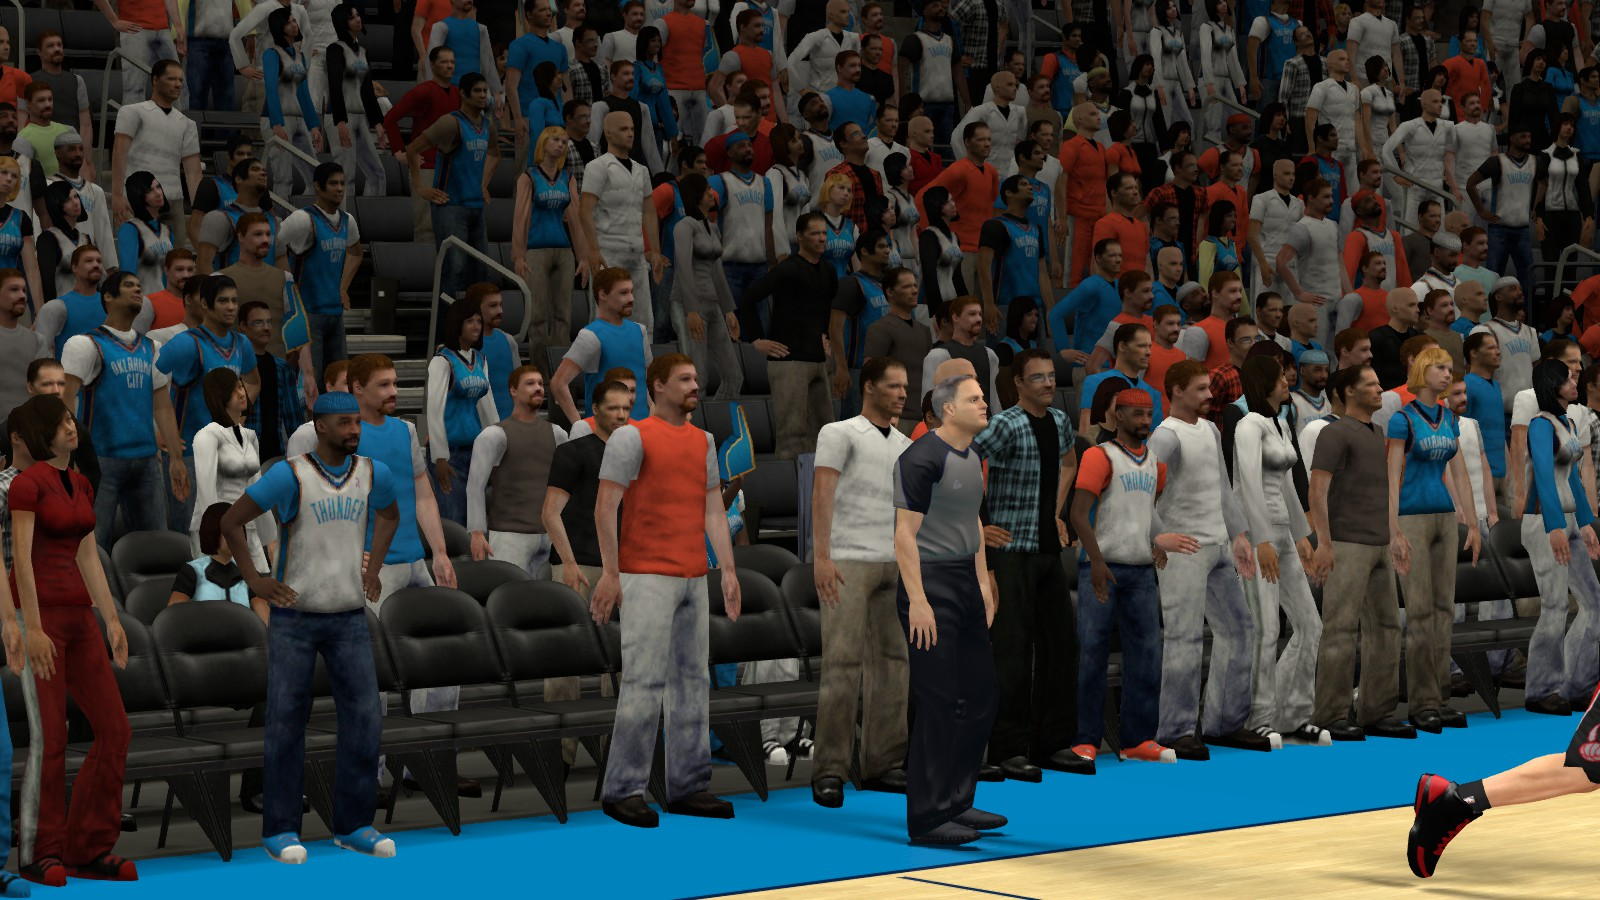 T-Neck's Retextured 2K13 Crowd